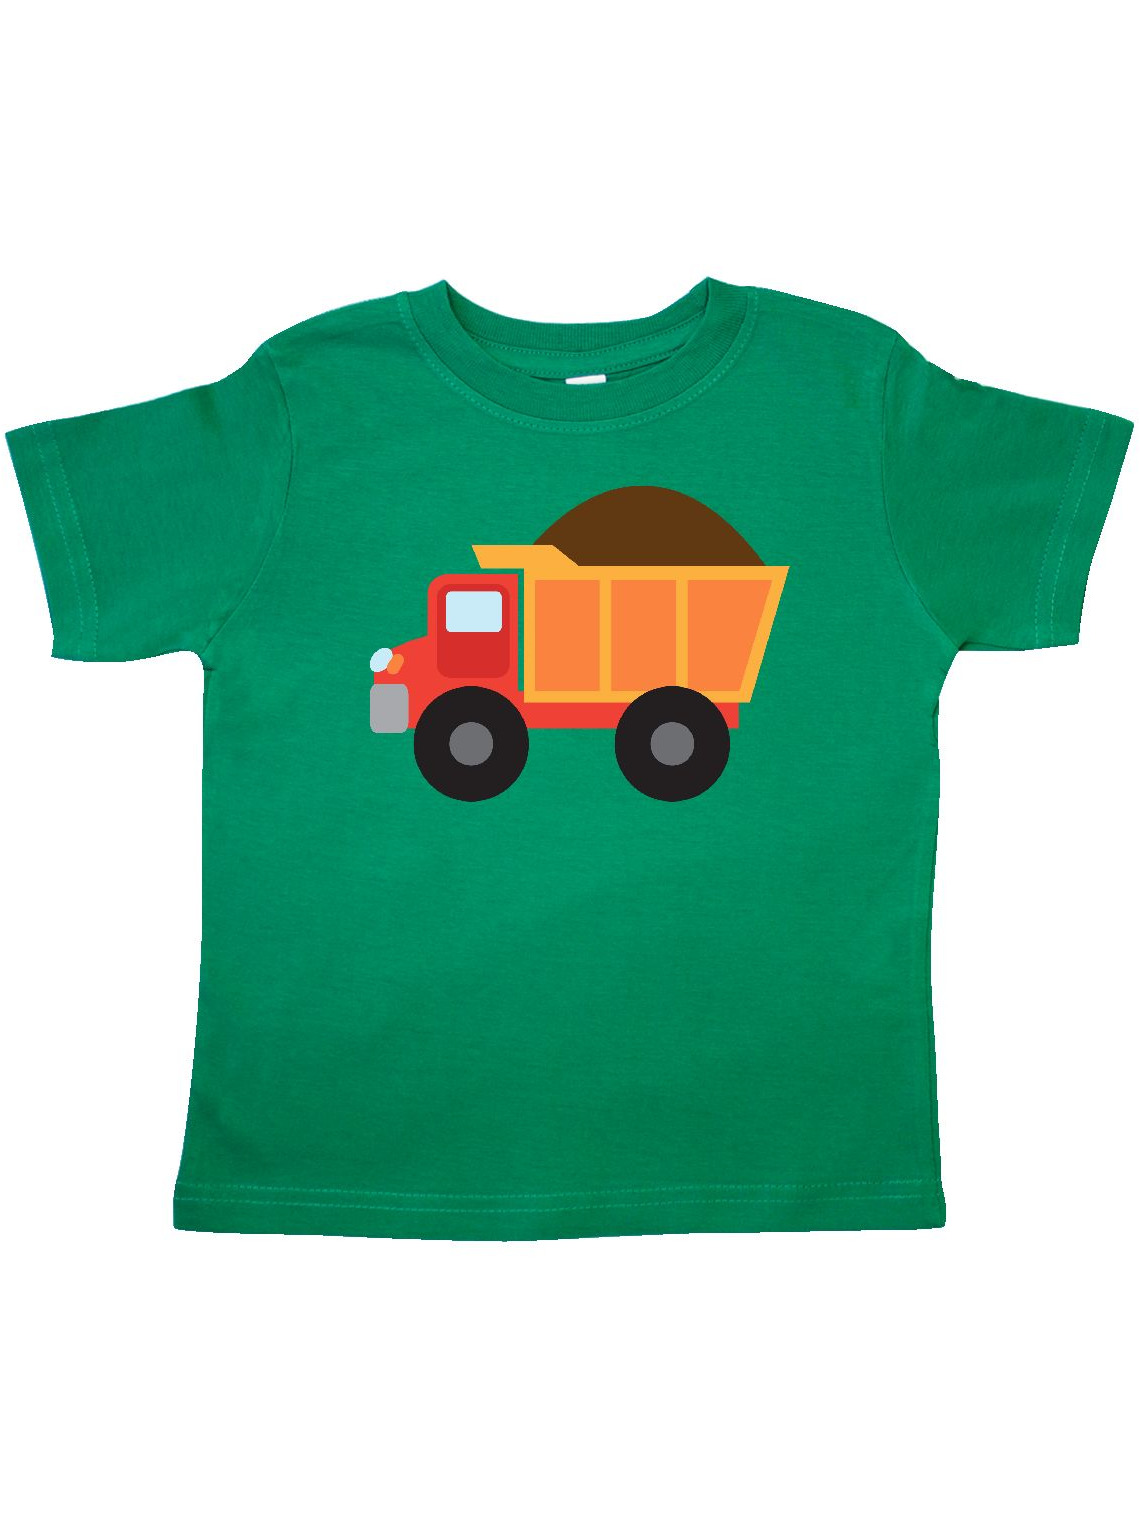 Work Truck Construction Vehicle Toddler T-Shirt